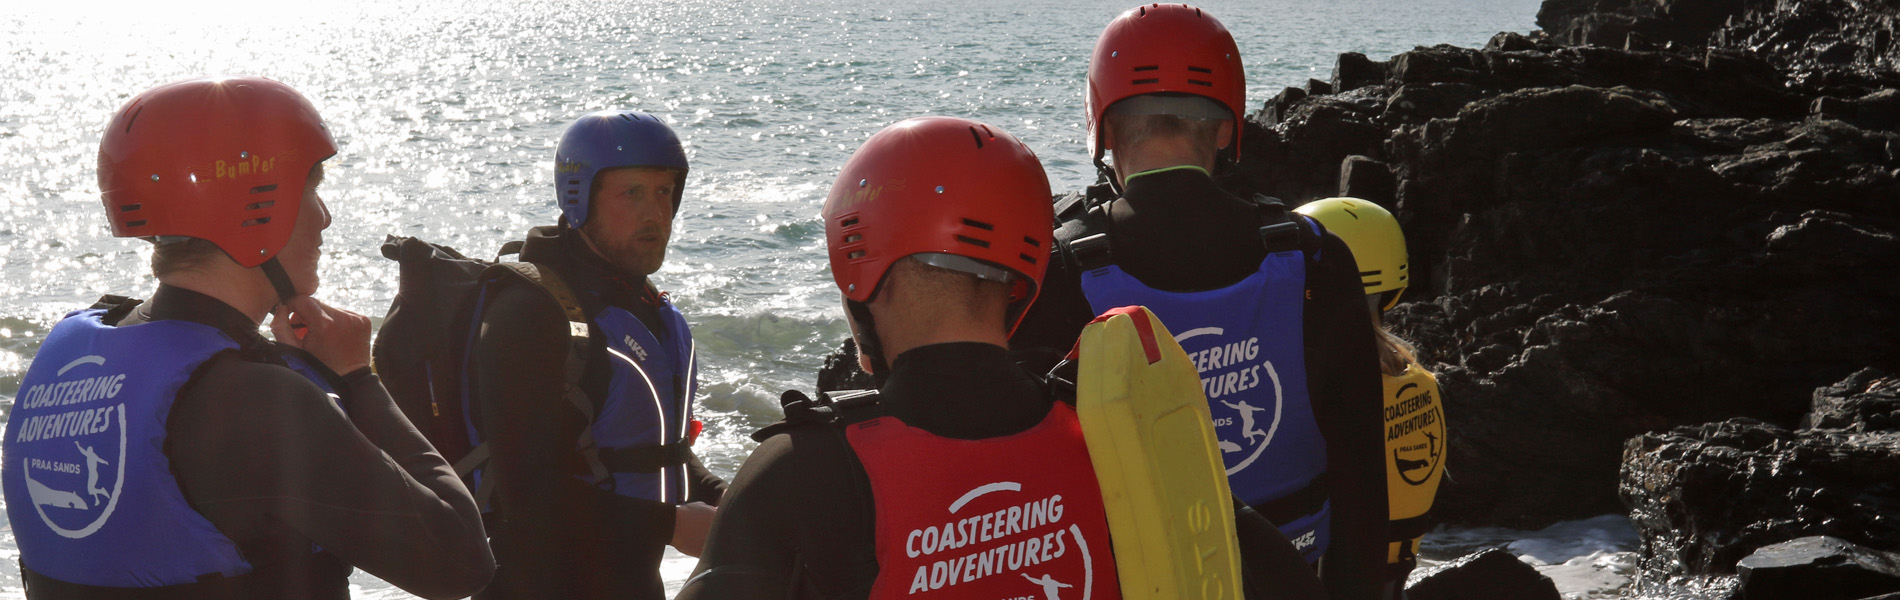 About the team at Coasteering Adventures